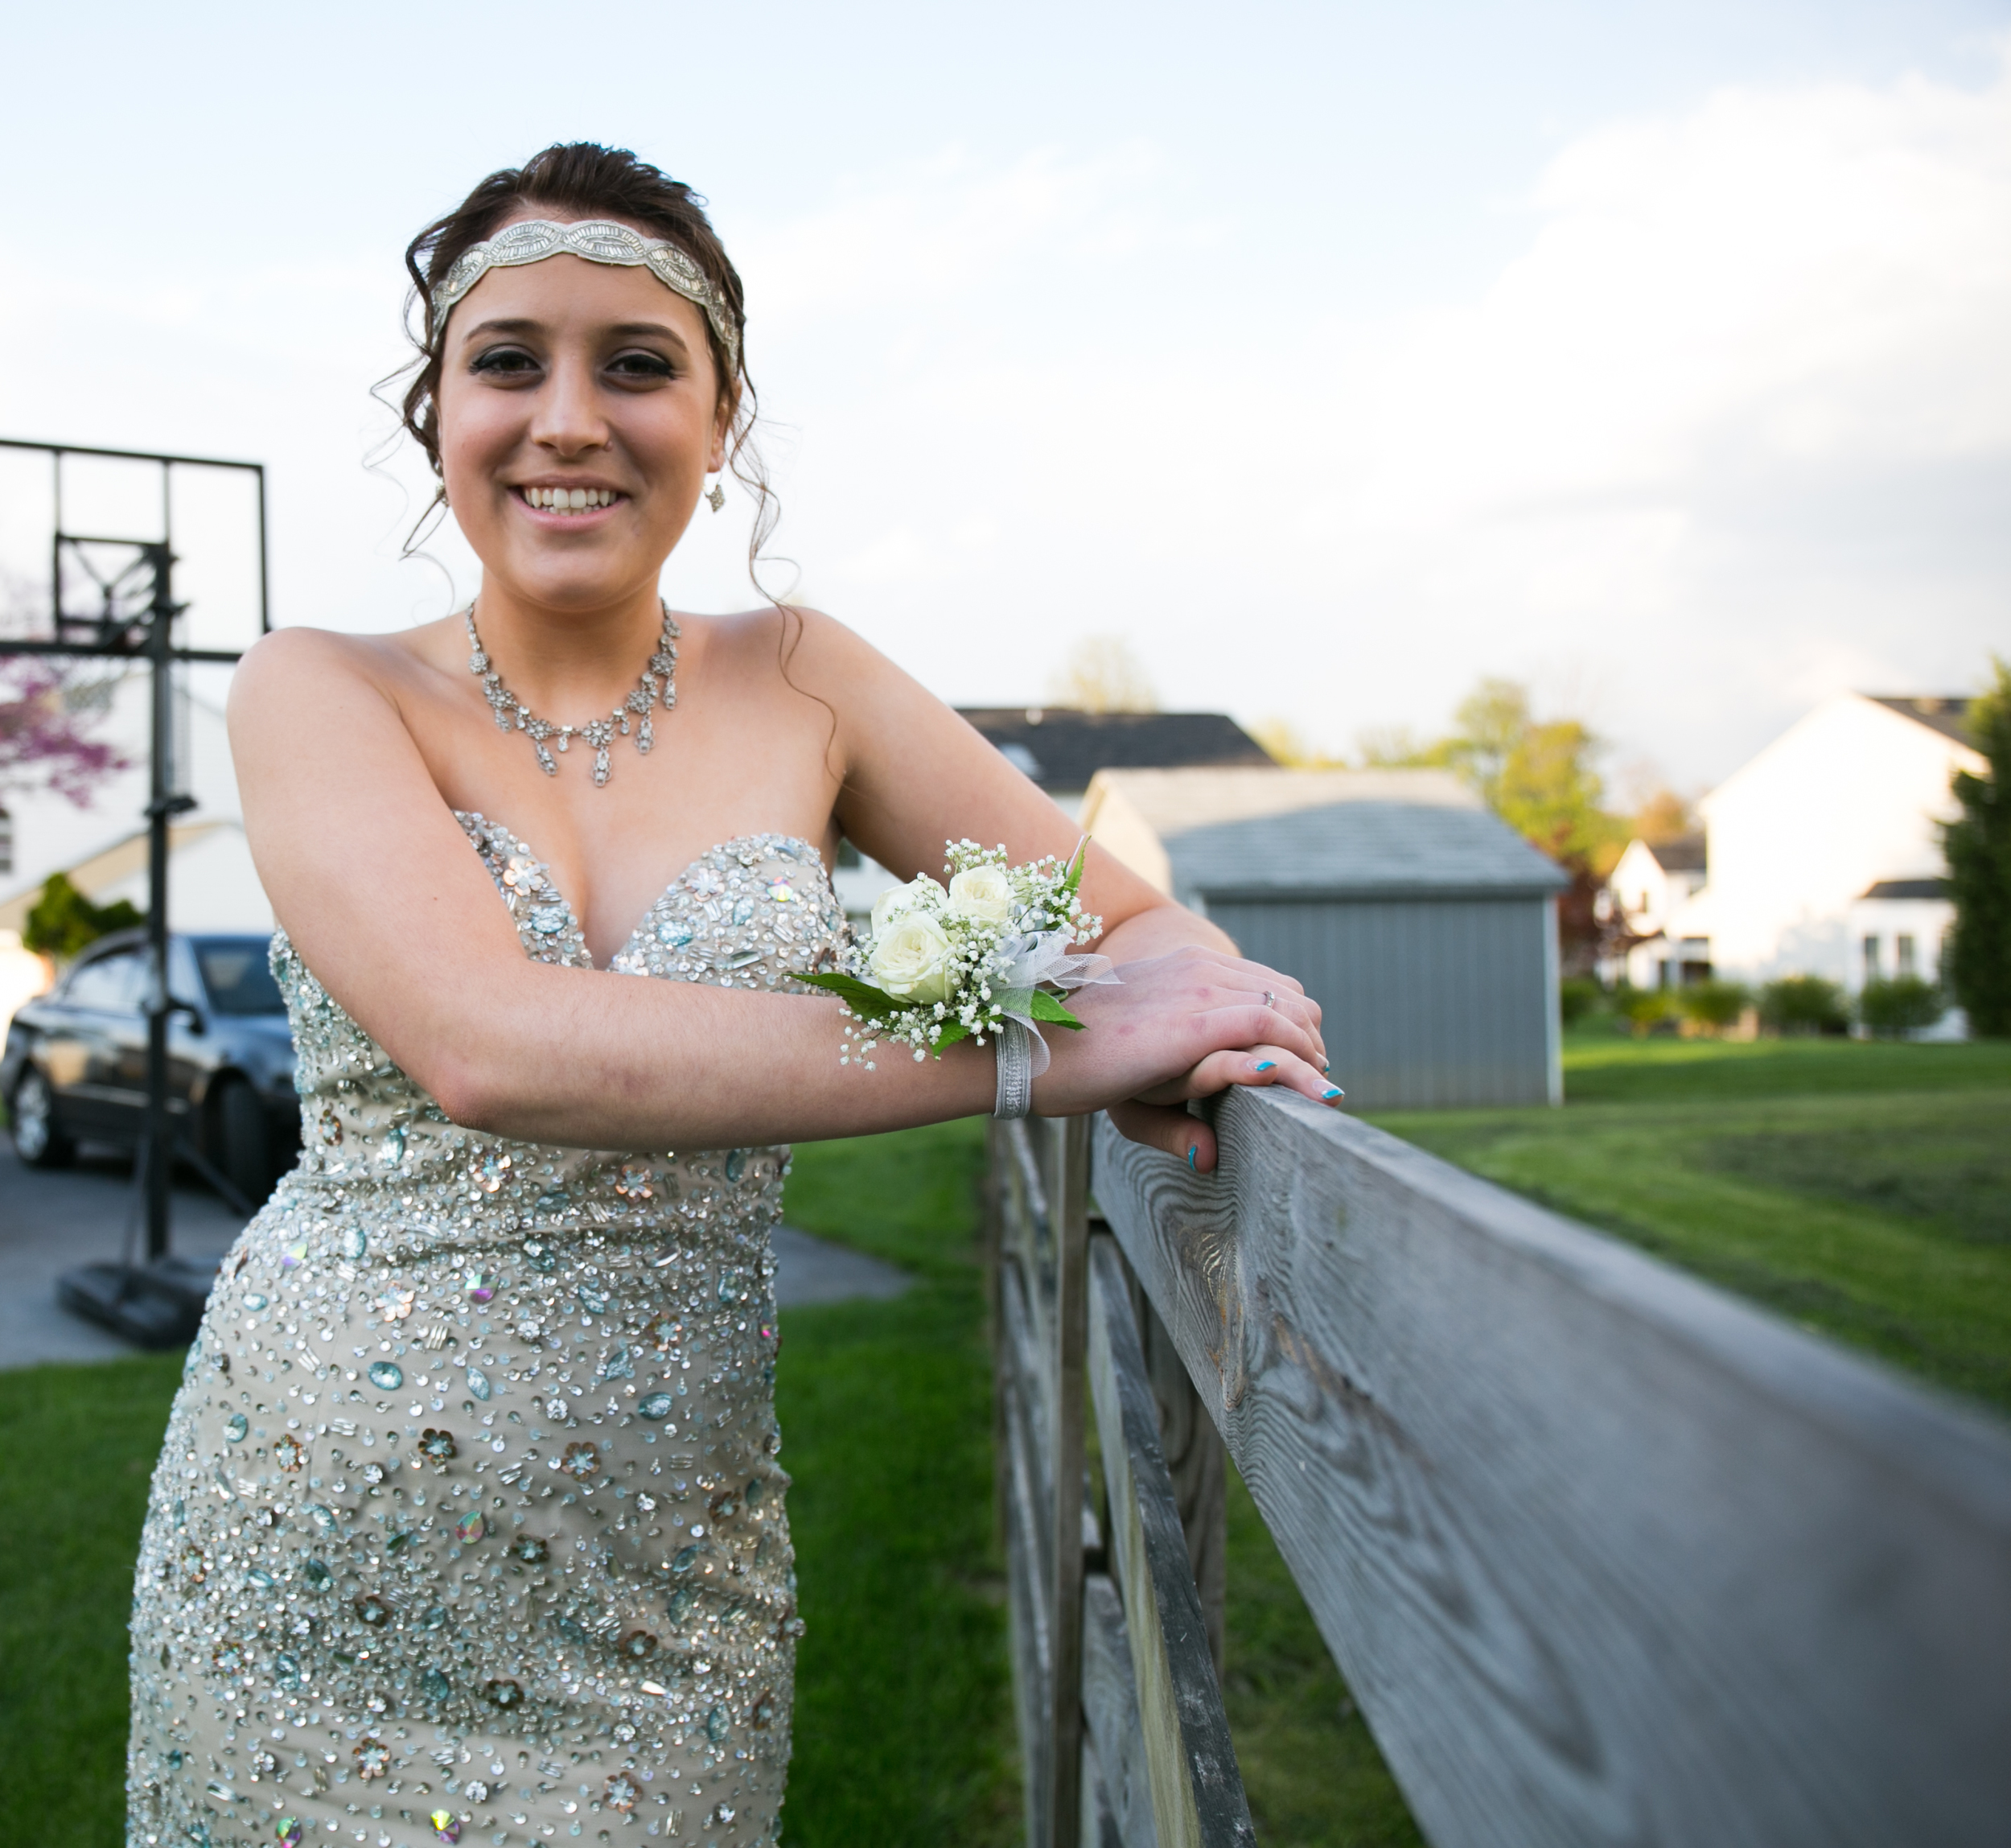 Mount-De-Sales-Pre-Prom-May-2014-83.jpg